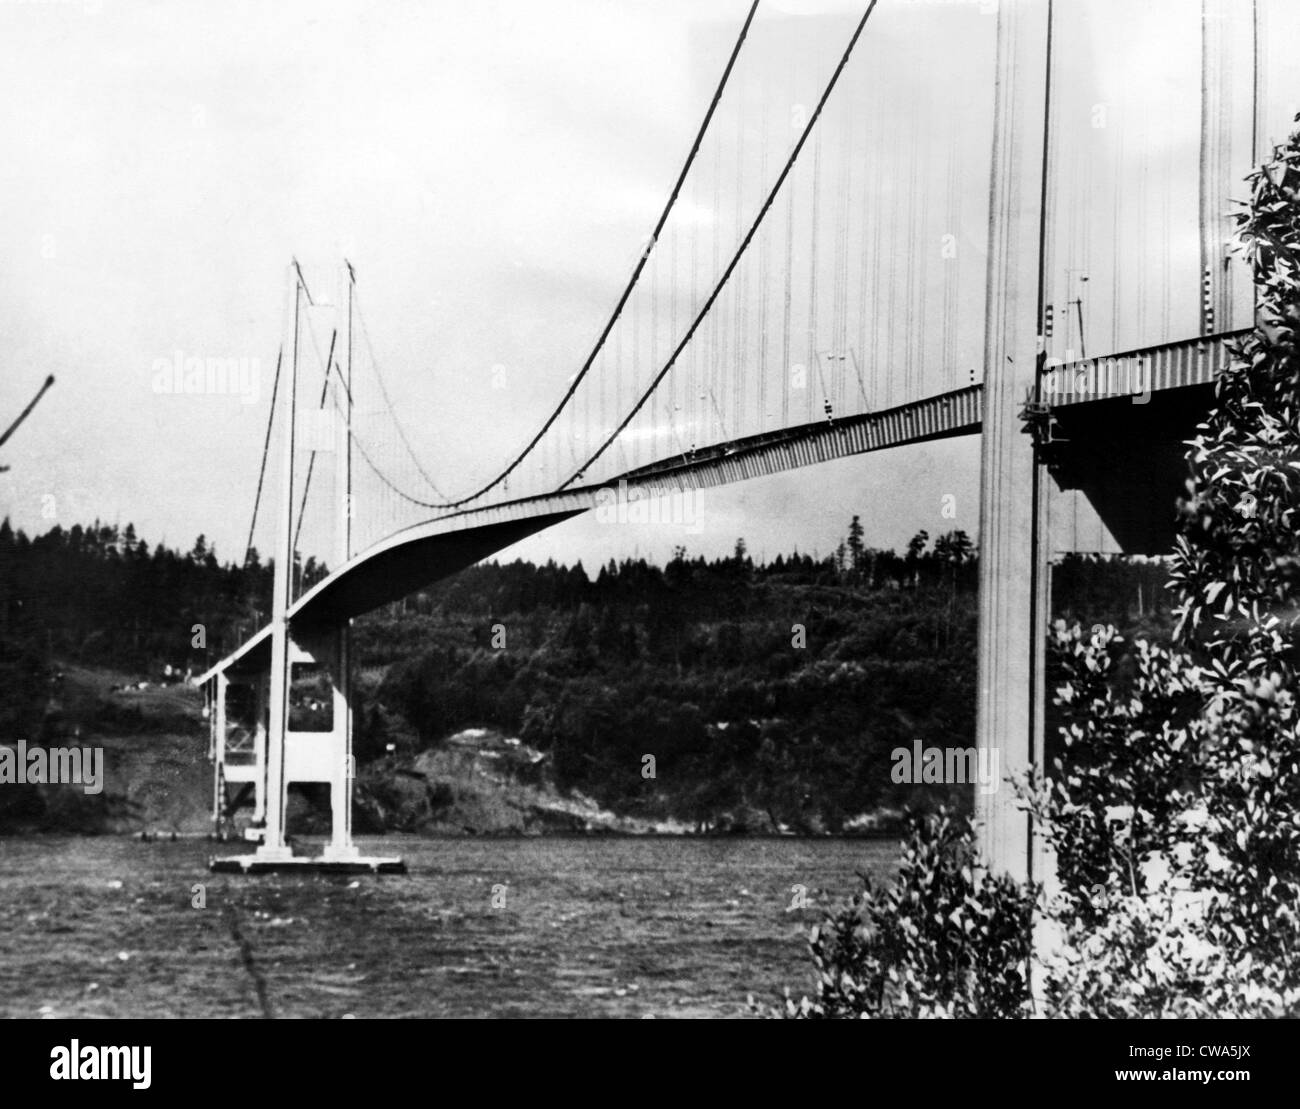 The narrows bridge across Puget Sound in Tacoma, Washington is twisted by a high wind. The bridge collapsed minutes - Stock Image